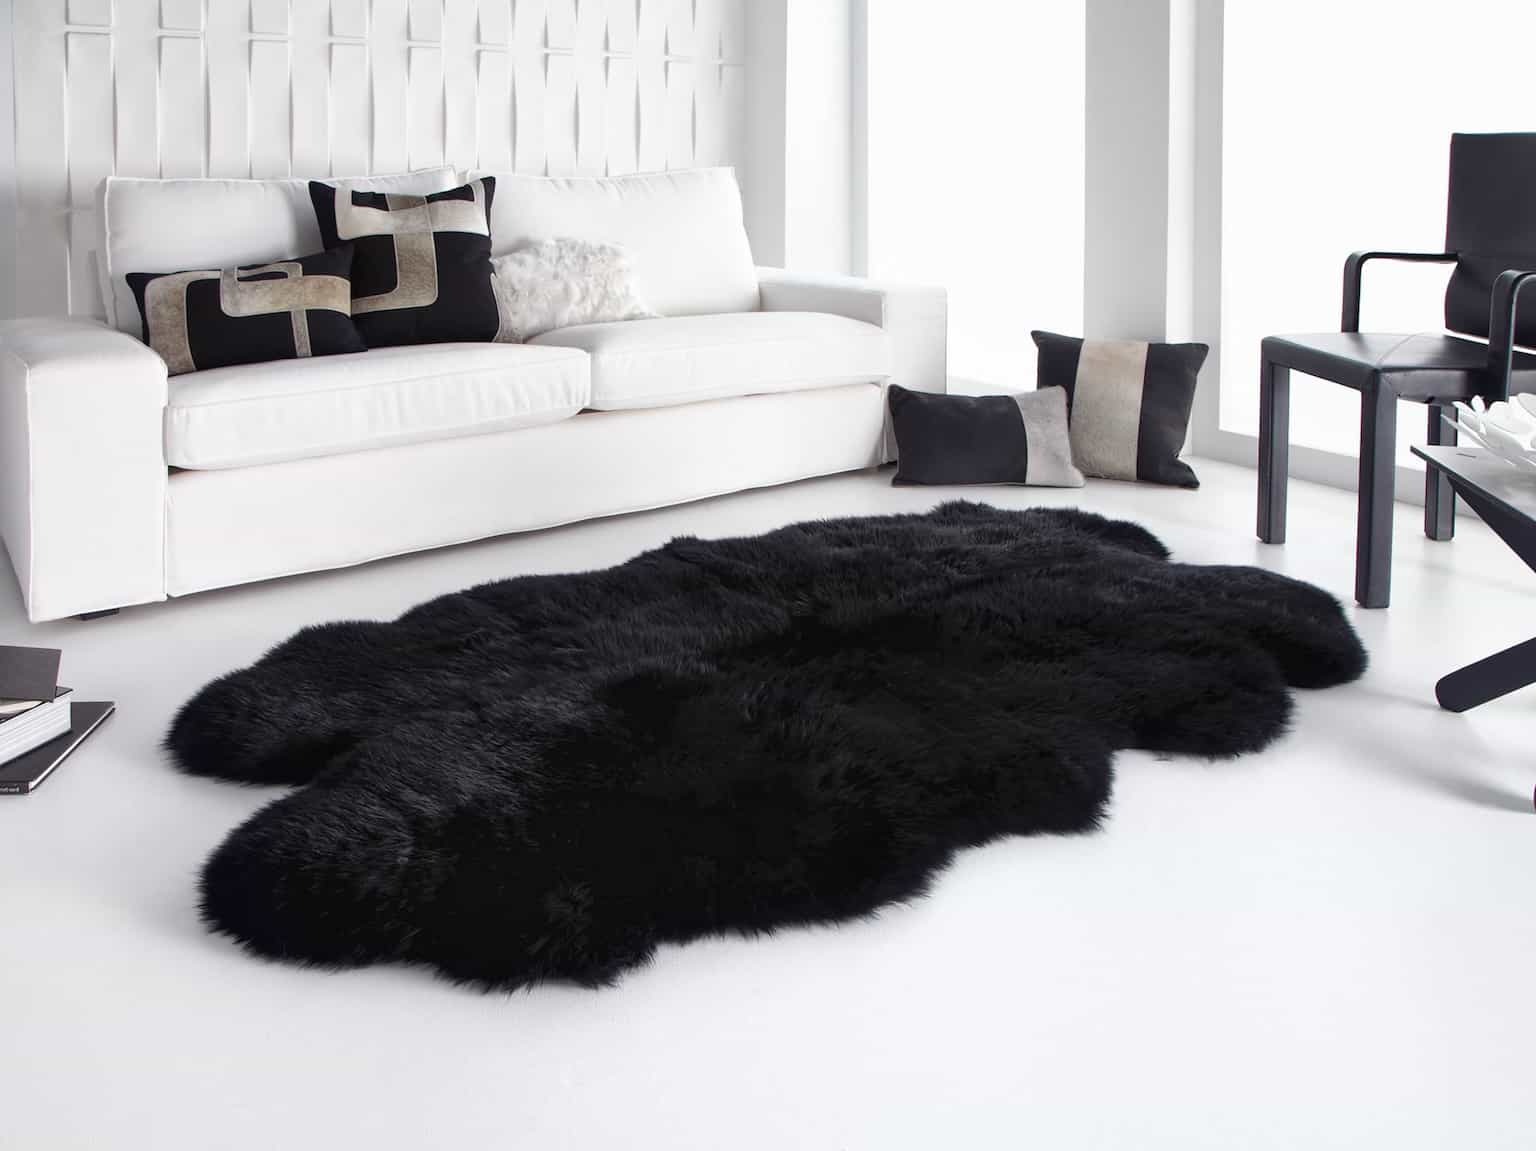 Black And White Minimalist Living Room With Quarto Ivory Longwool Black Sheepskin Rug (Image 1 of 15)